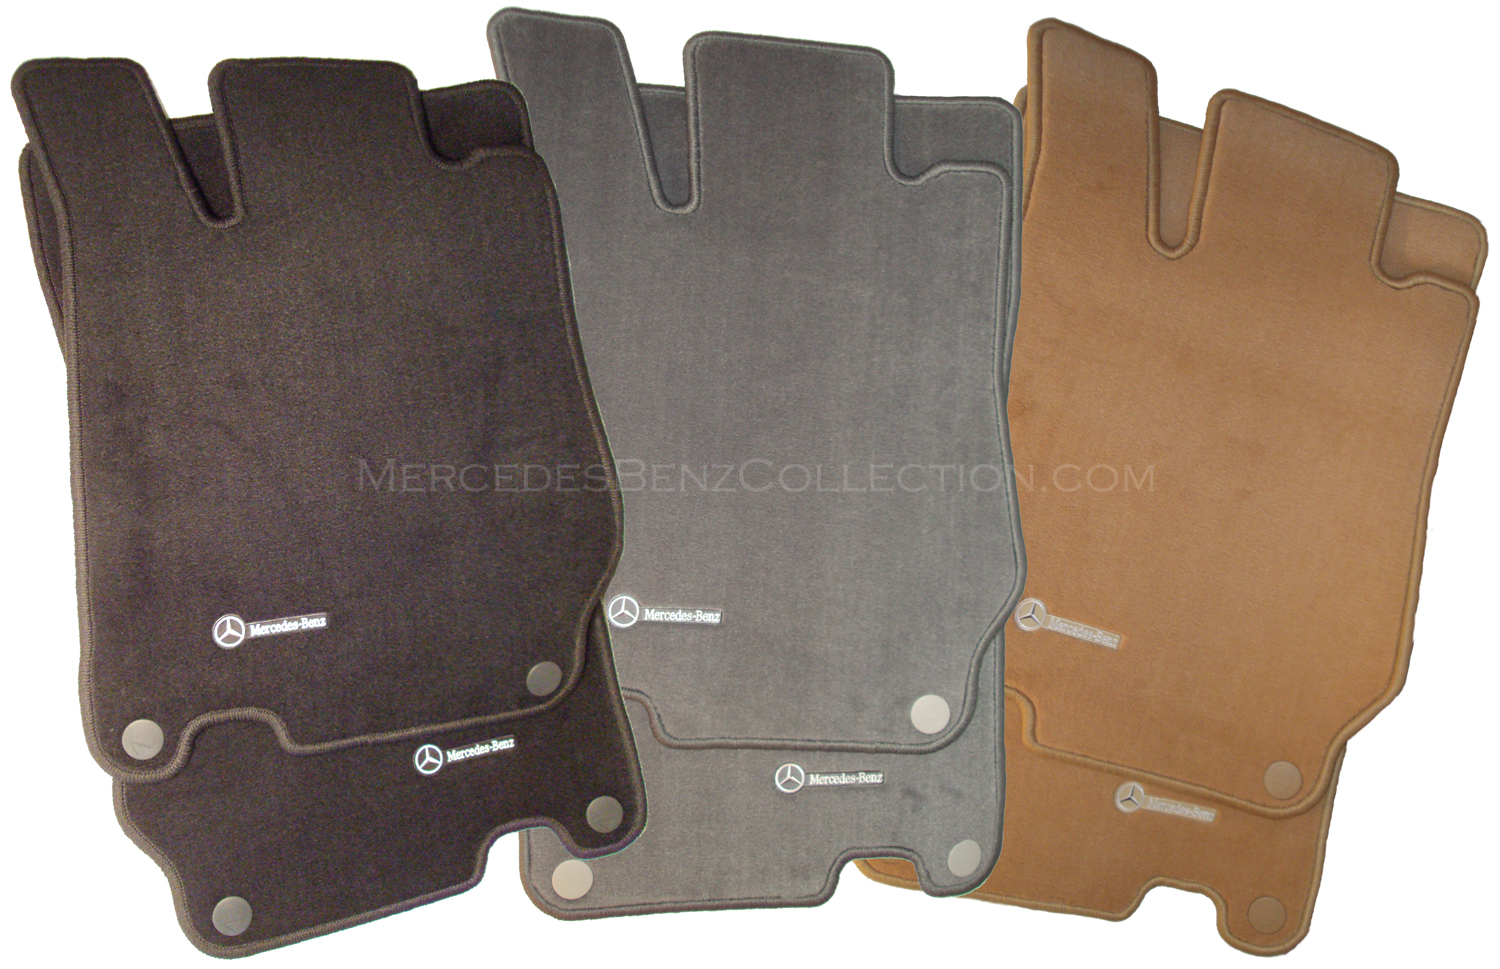 Mercedes benz genuine oem carpeted floor mats sl class for Mercedes benz e350 floor mats